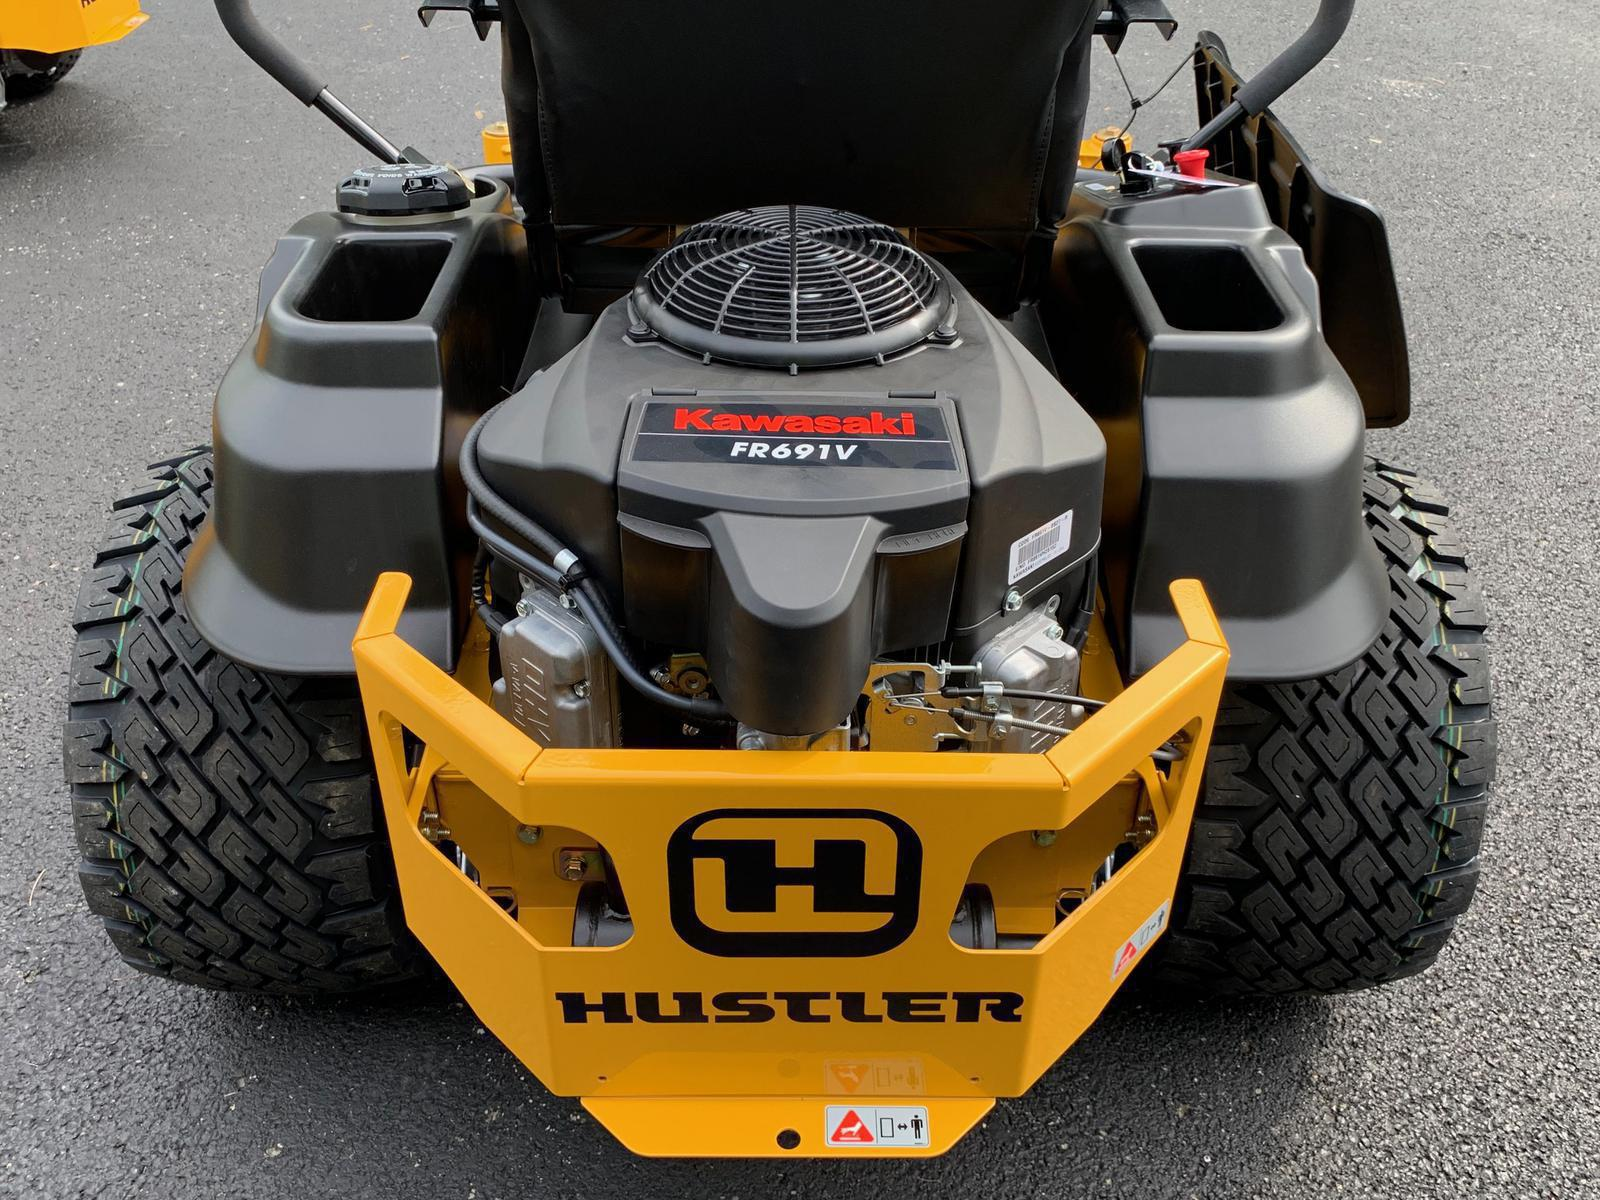 2019 Hustler Turf Equipment Raptor 60 SDX FR730 Zero Turn Mower REBATE SALE